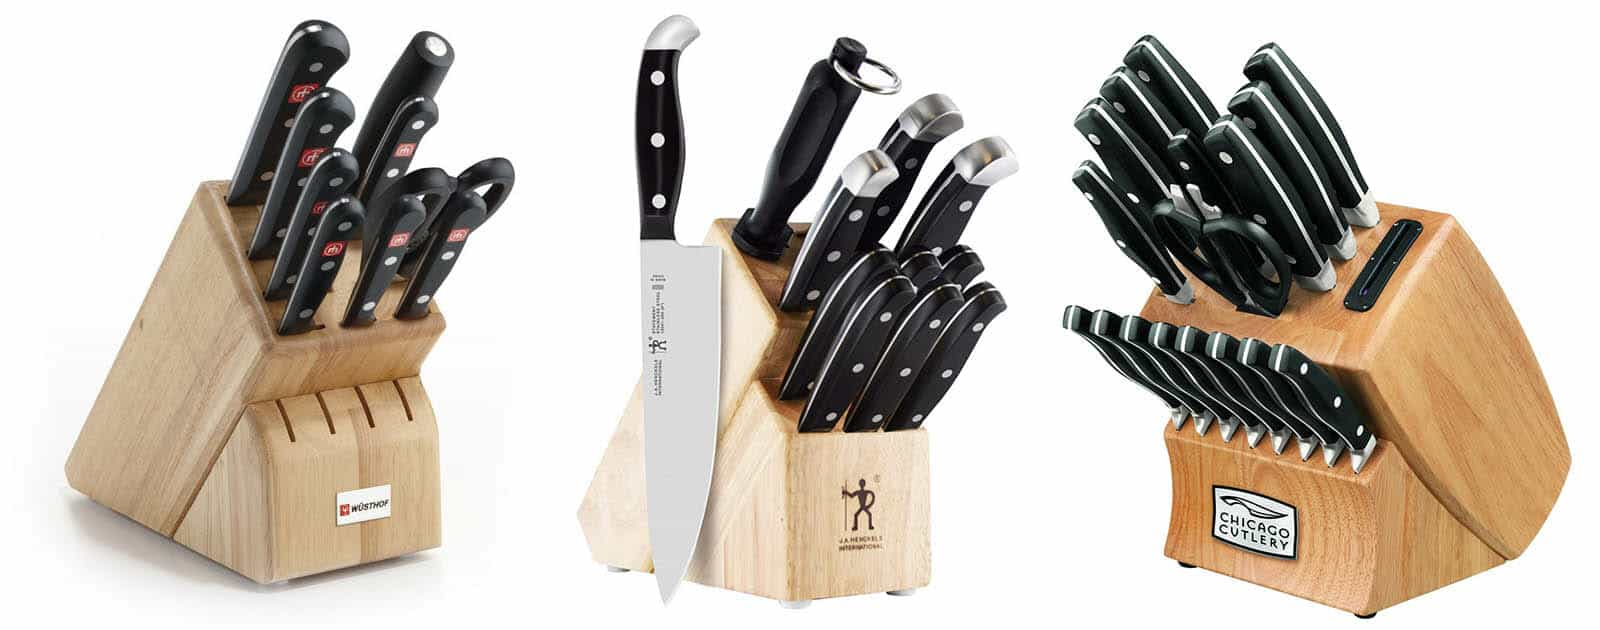 What Is The Best Kitchen Knife Set Under $200 in 2019?